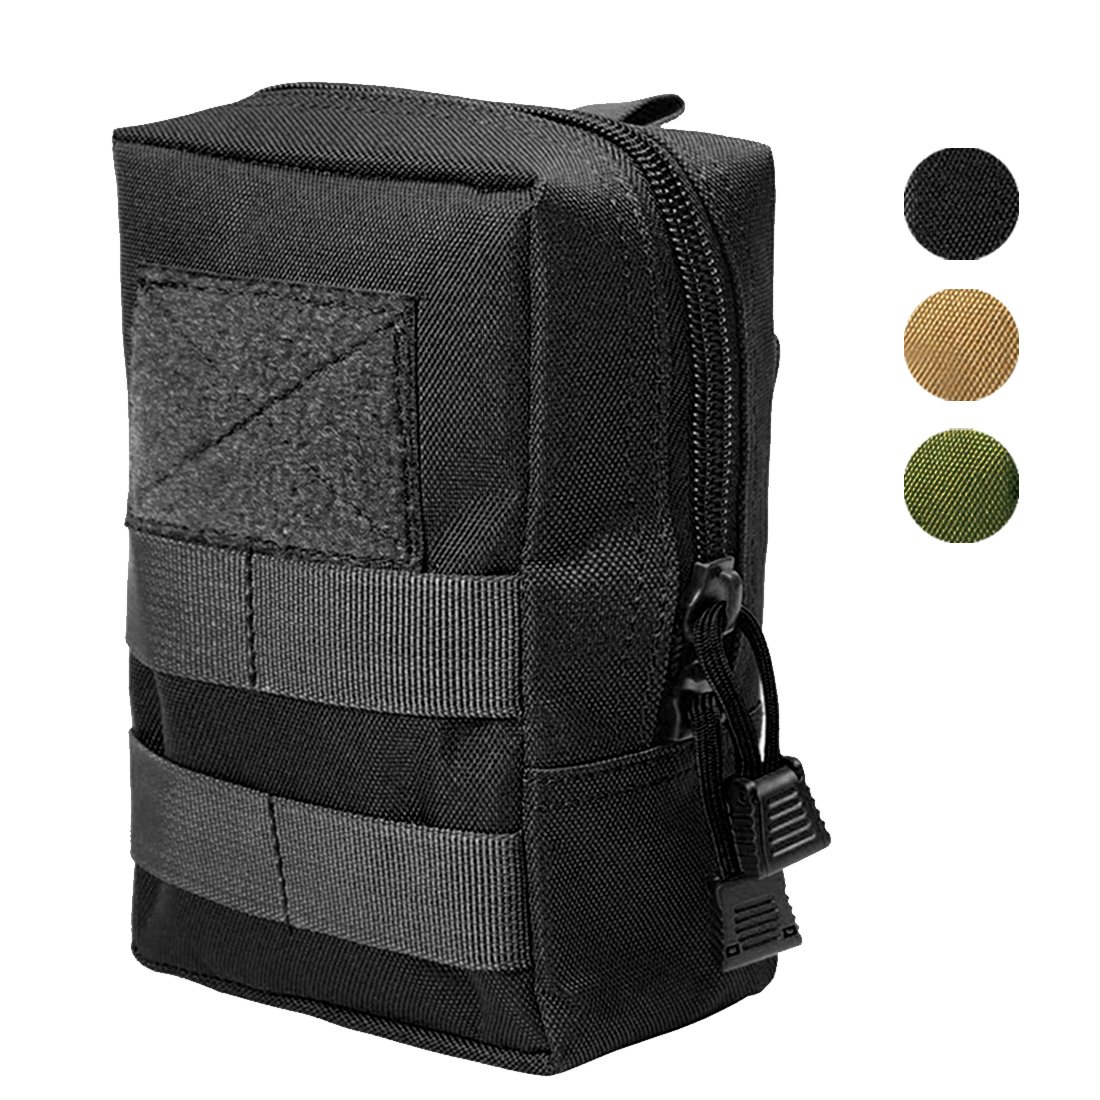 Hoanan Molle Pouches, Tactical Admin Pouch Compact EDC Utility Gadget Gear Pouch Military Carry Accessory Belt Hanging Waist Bag